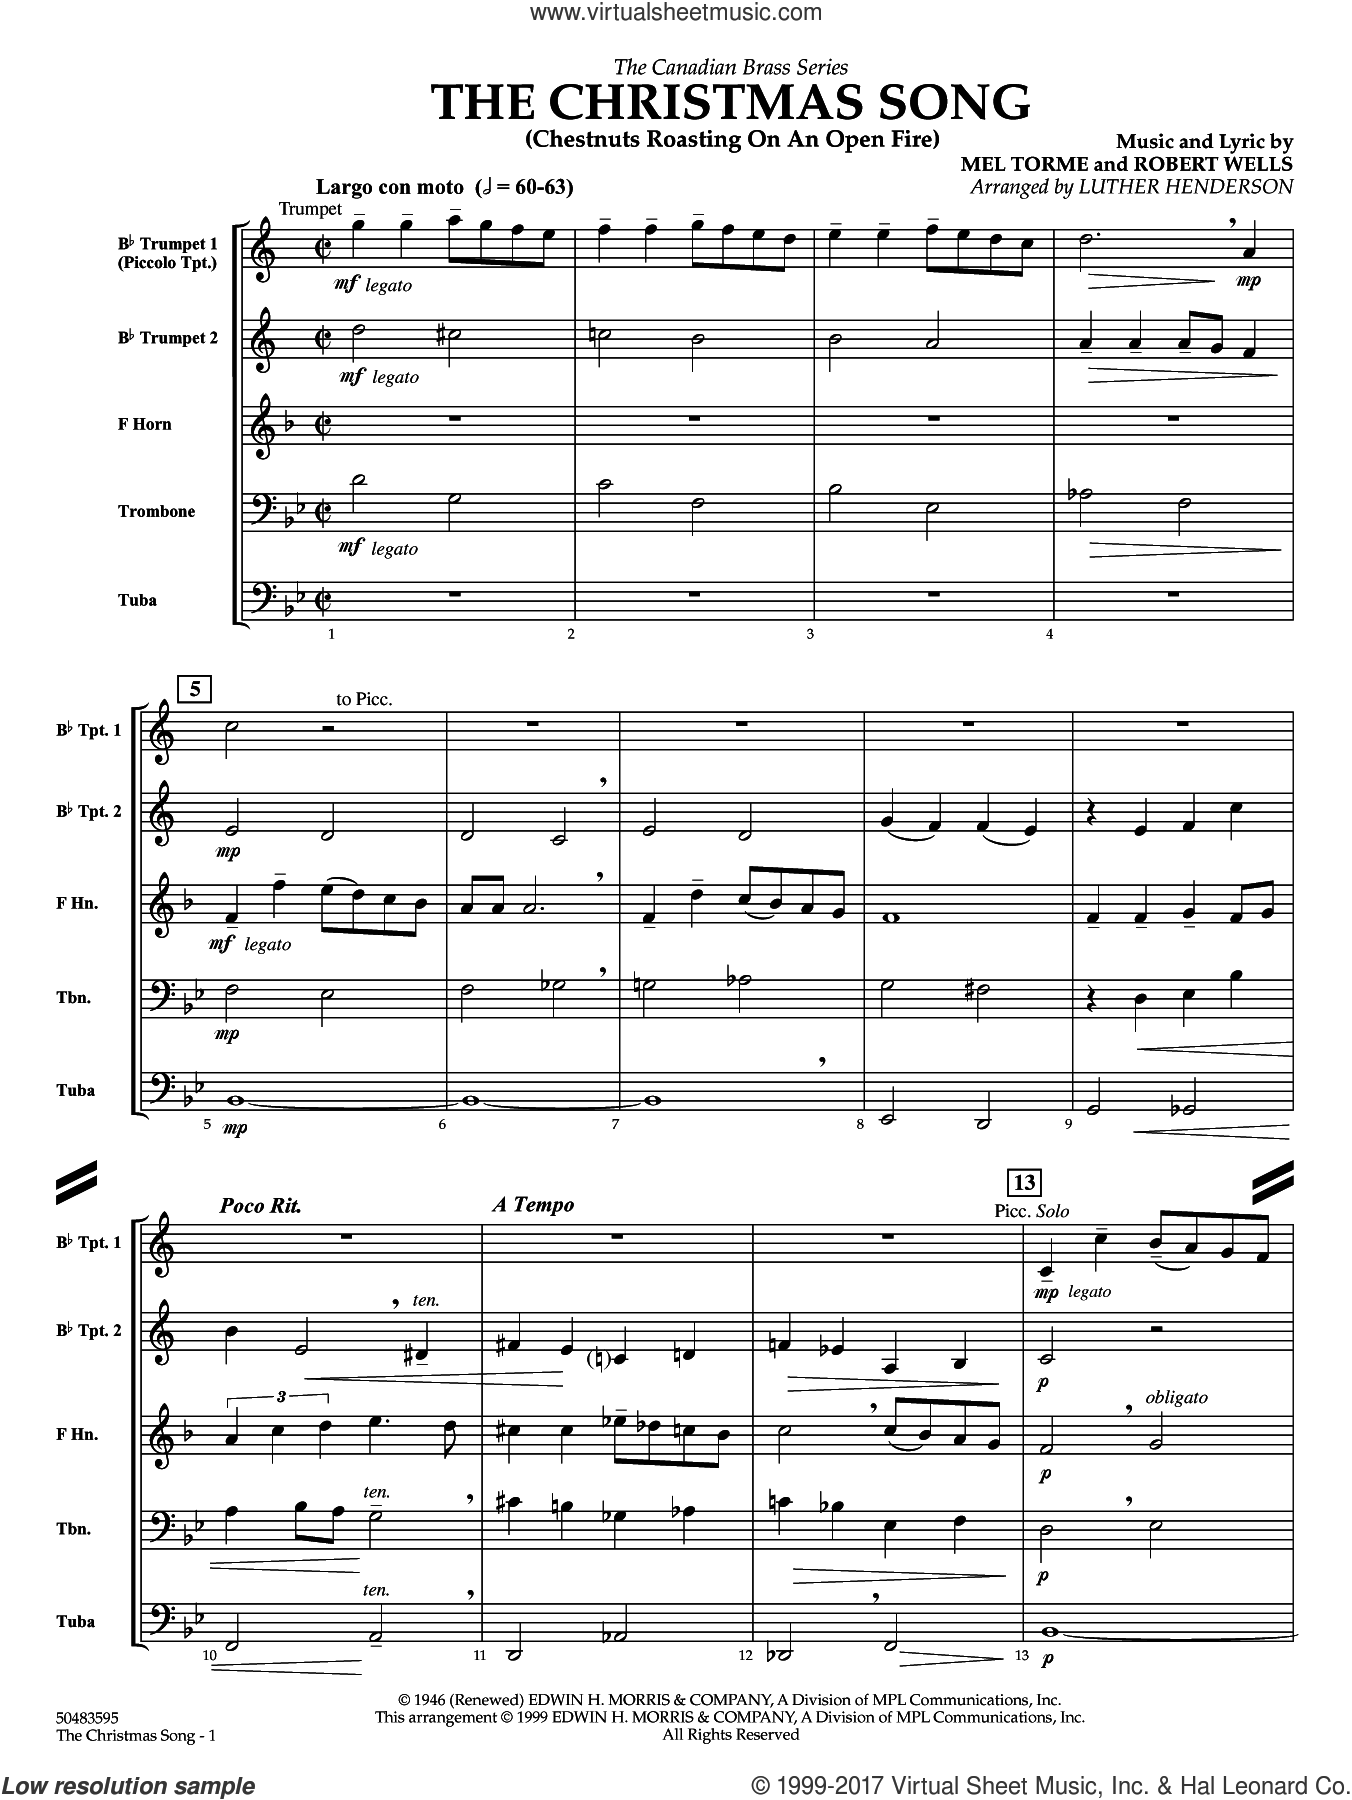 The Christmas Song (Chestnuts Roasting) (COMPLETE) sheet music for brass quintet by Luther Henderson and Mel Torme and Robert Wells, intermediate skill level